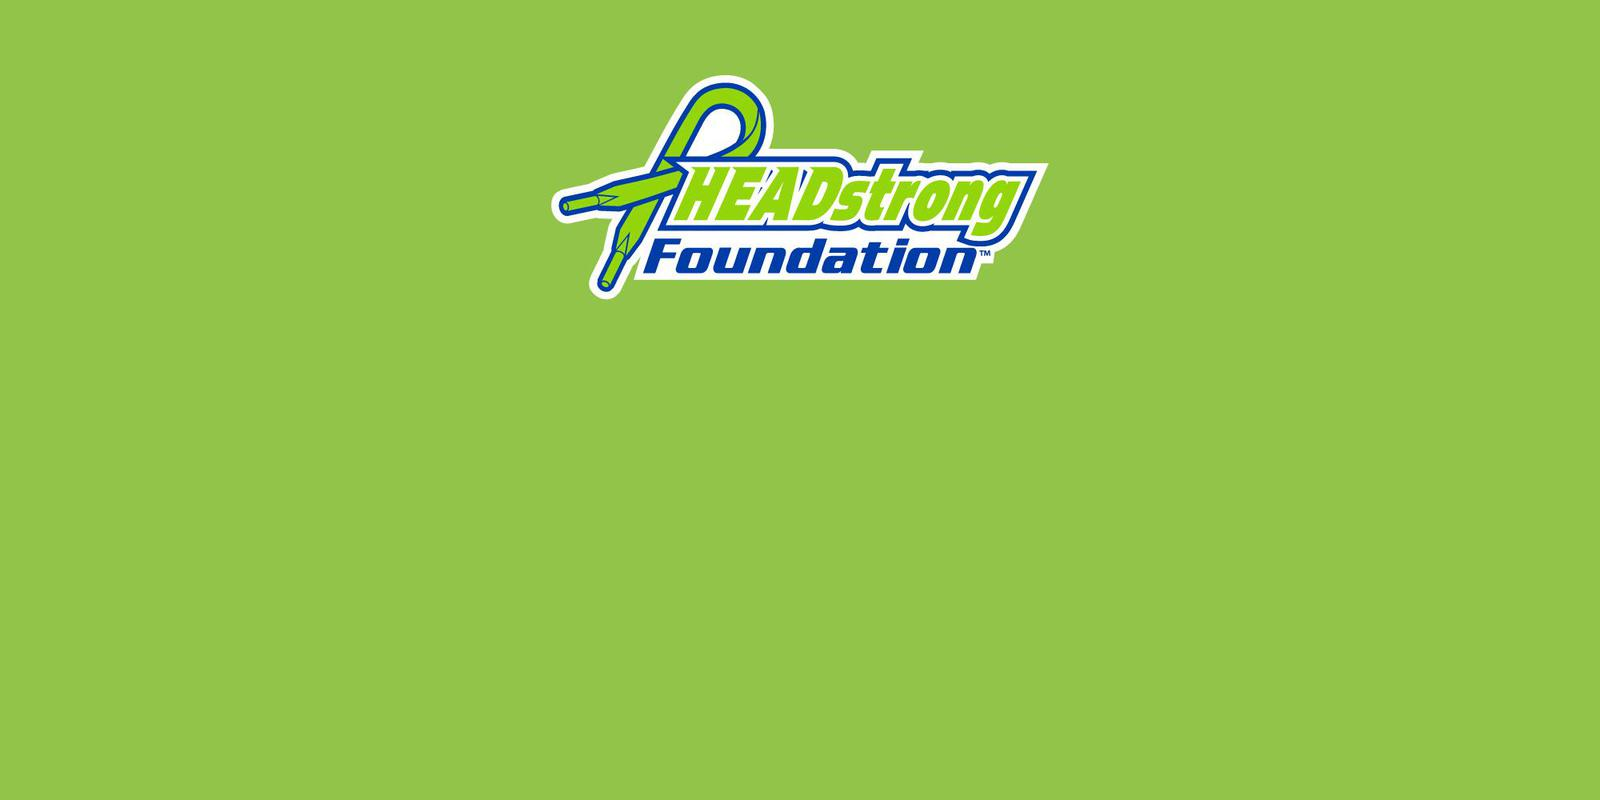 HEADstrong Logo Green Background